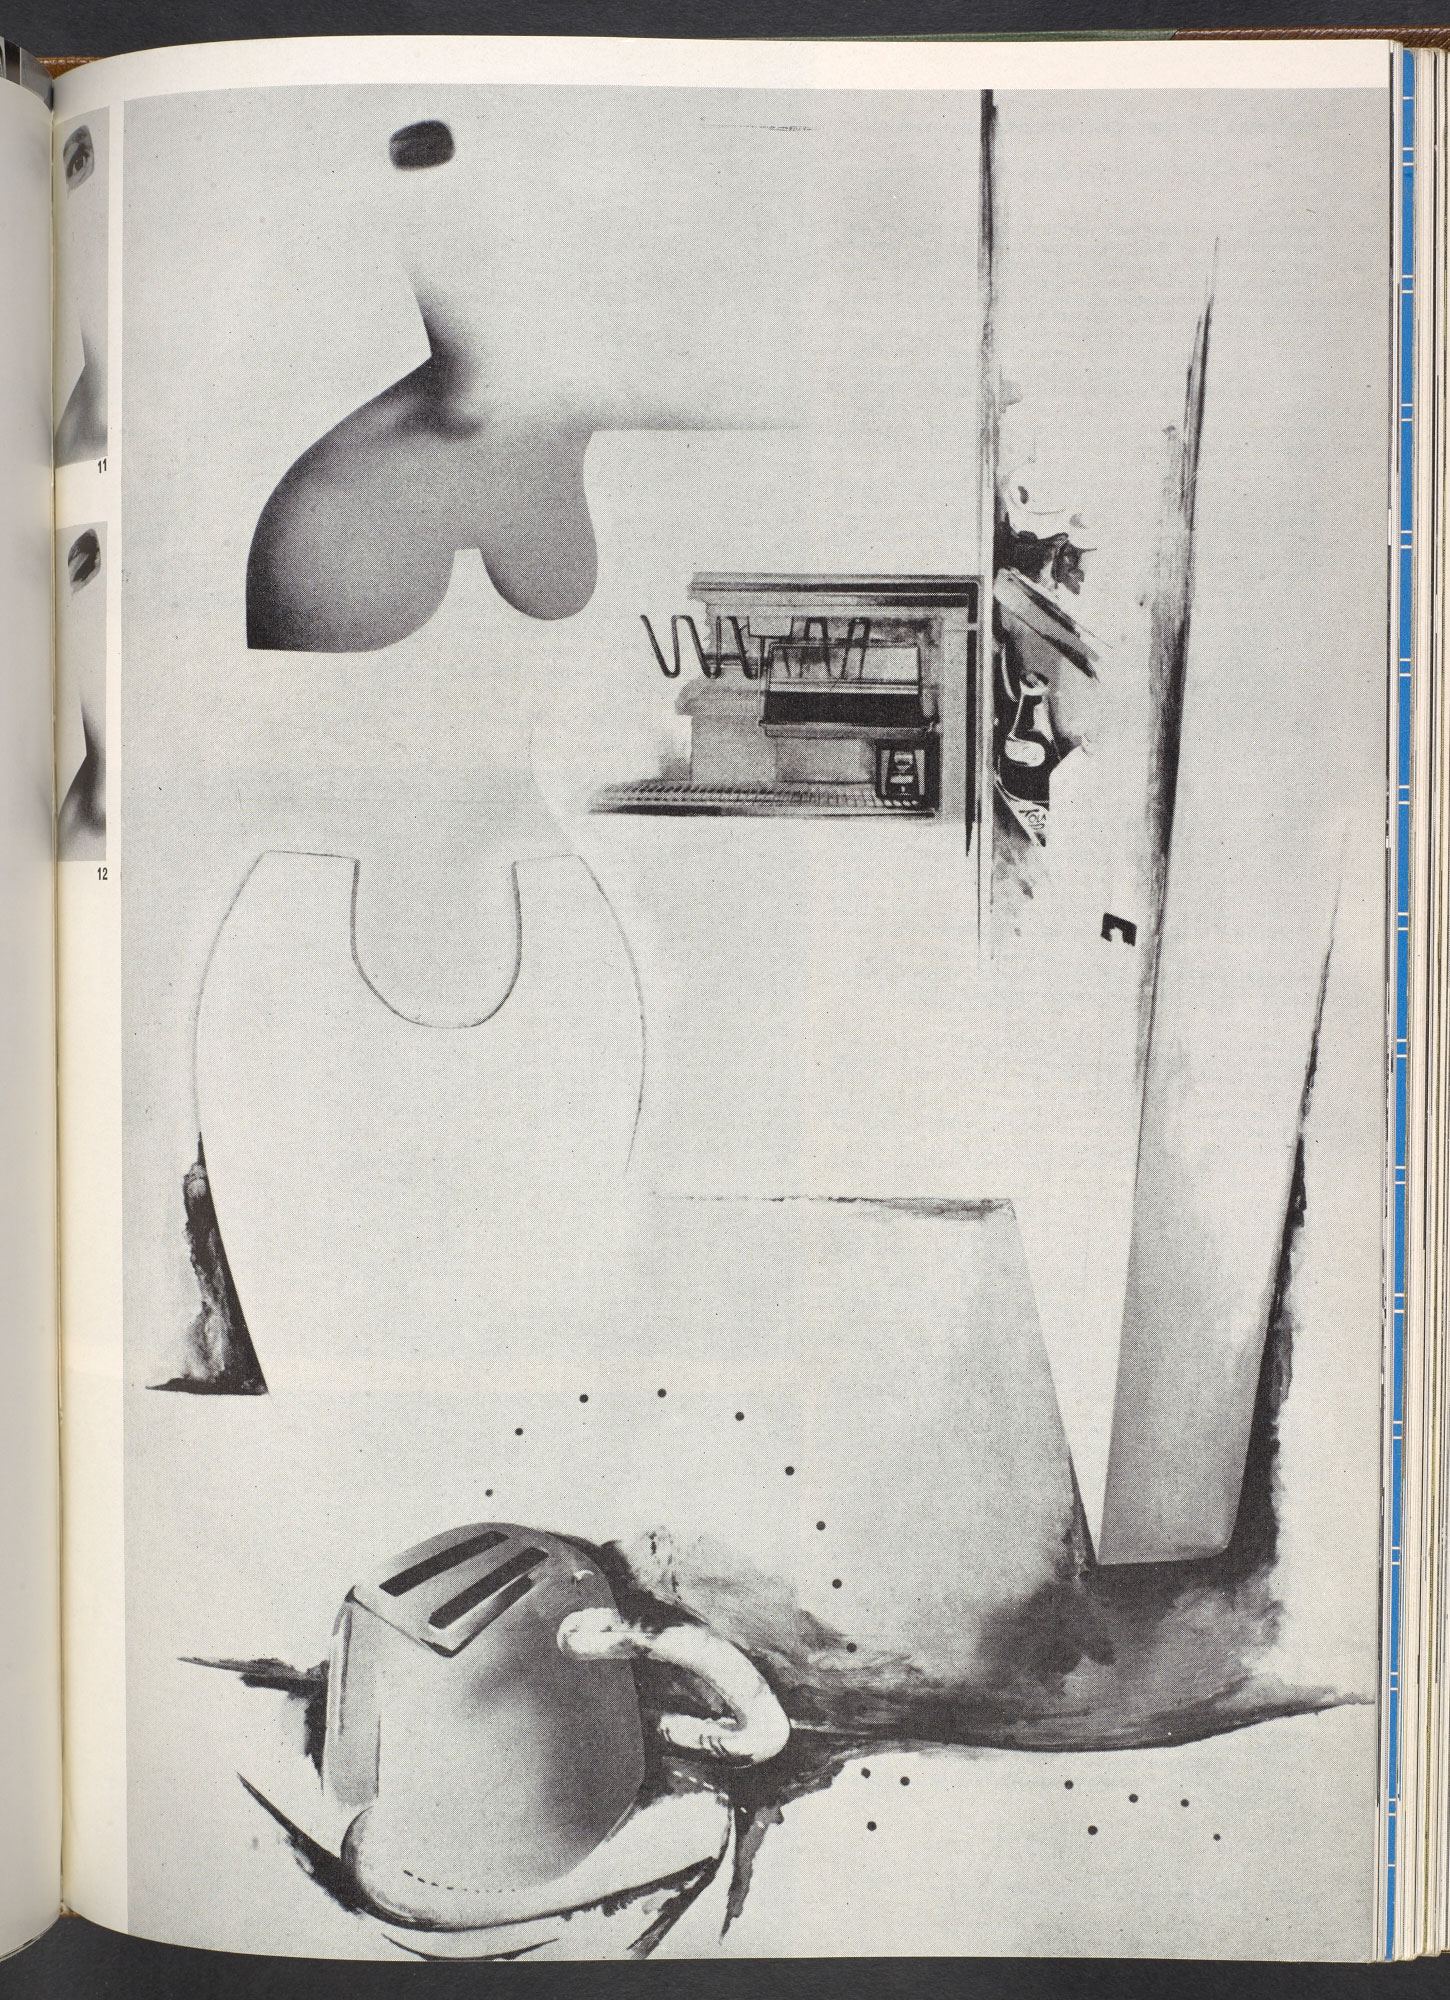 """'An exposition of """"$he""""' by Richard Hamilton, from Architectural Design"""